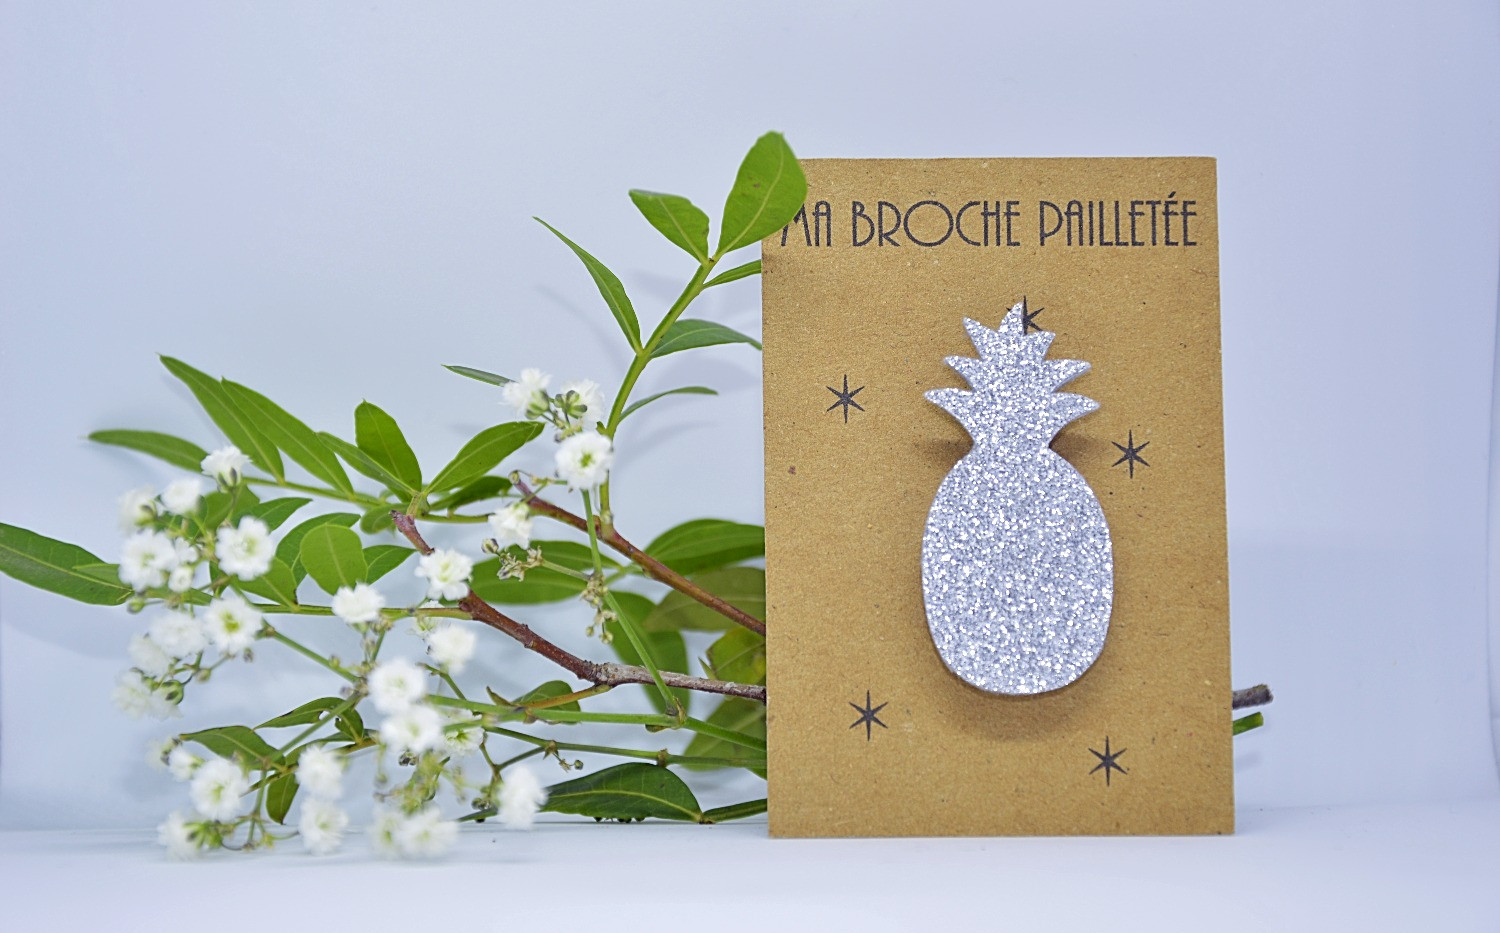 Broche paillettes ananas argent_edited.j